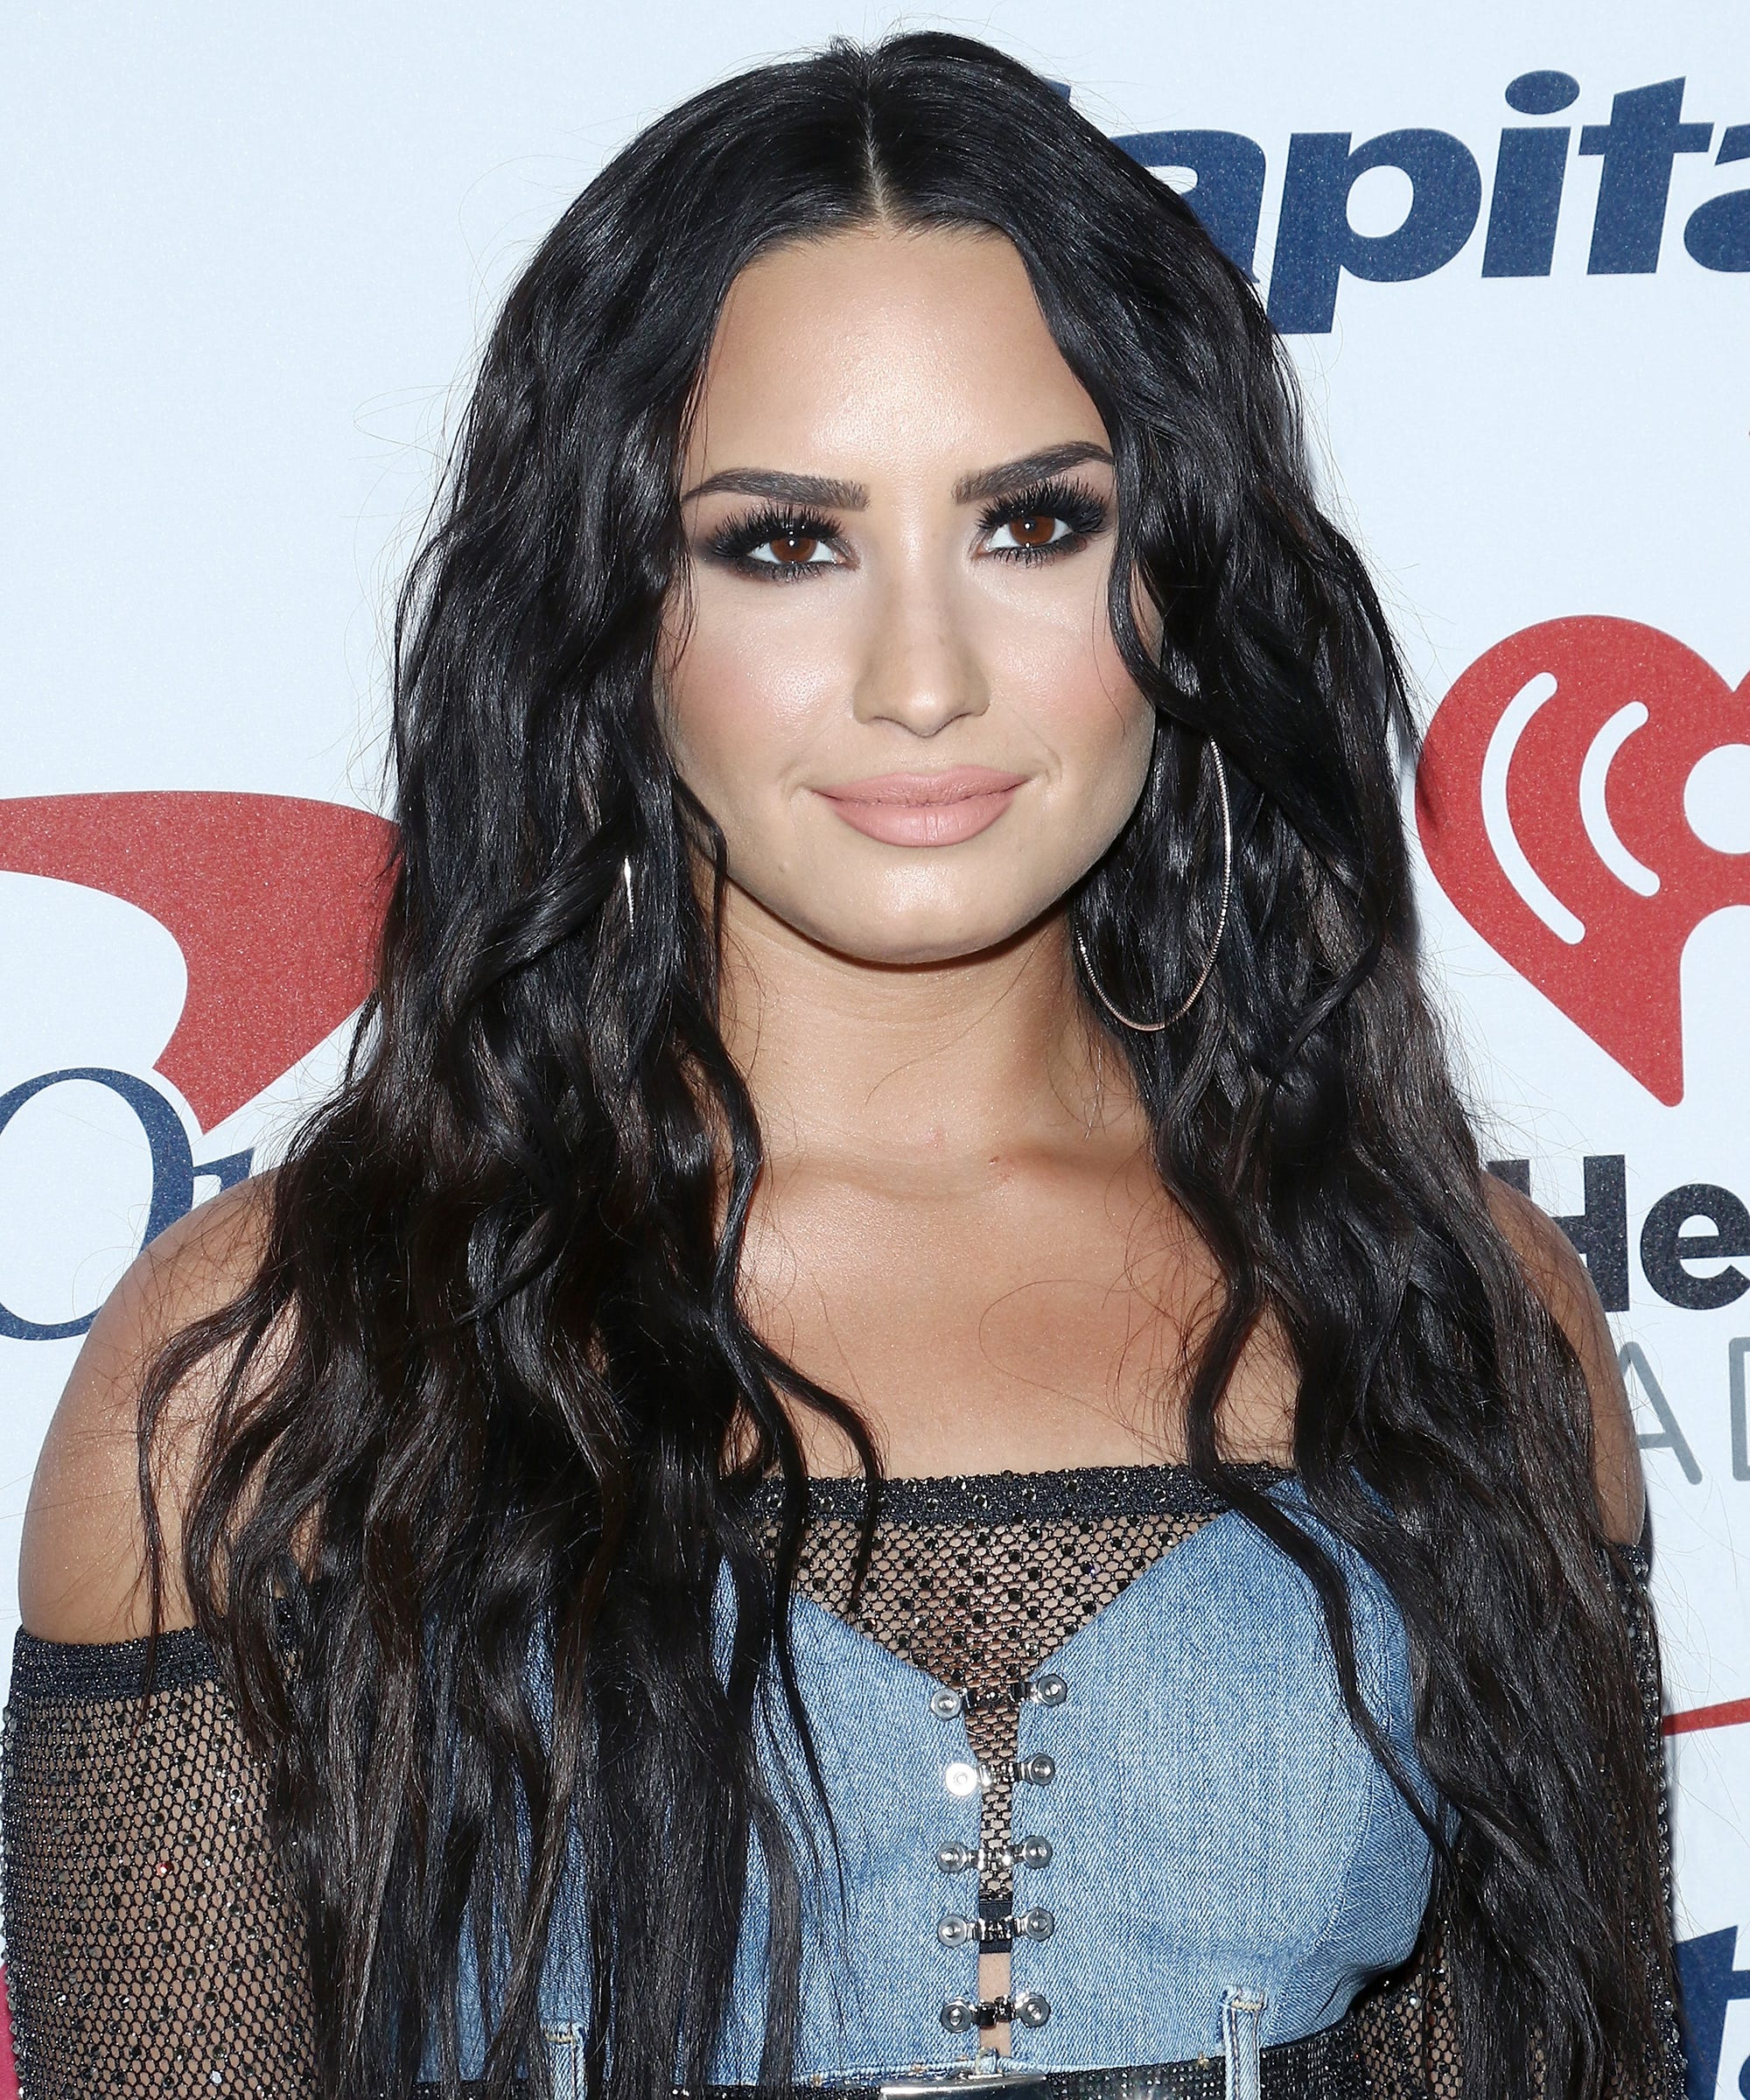 Mermaid Waves Hair Trend Kim Kardashian Demi Lovato